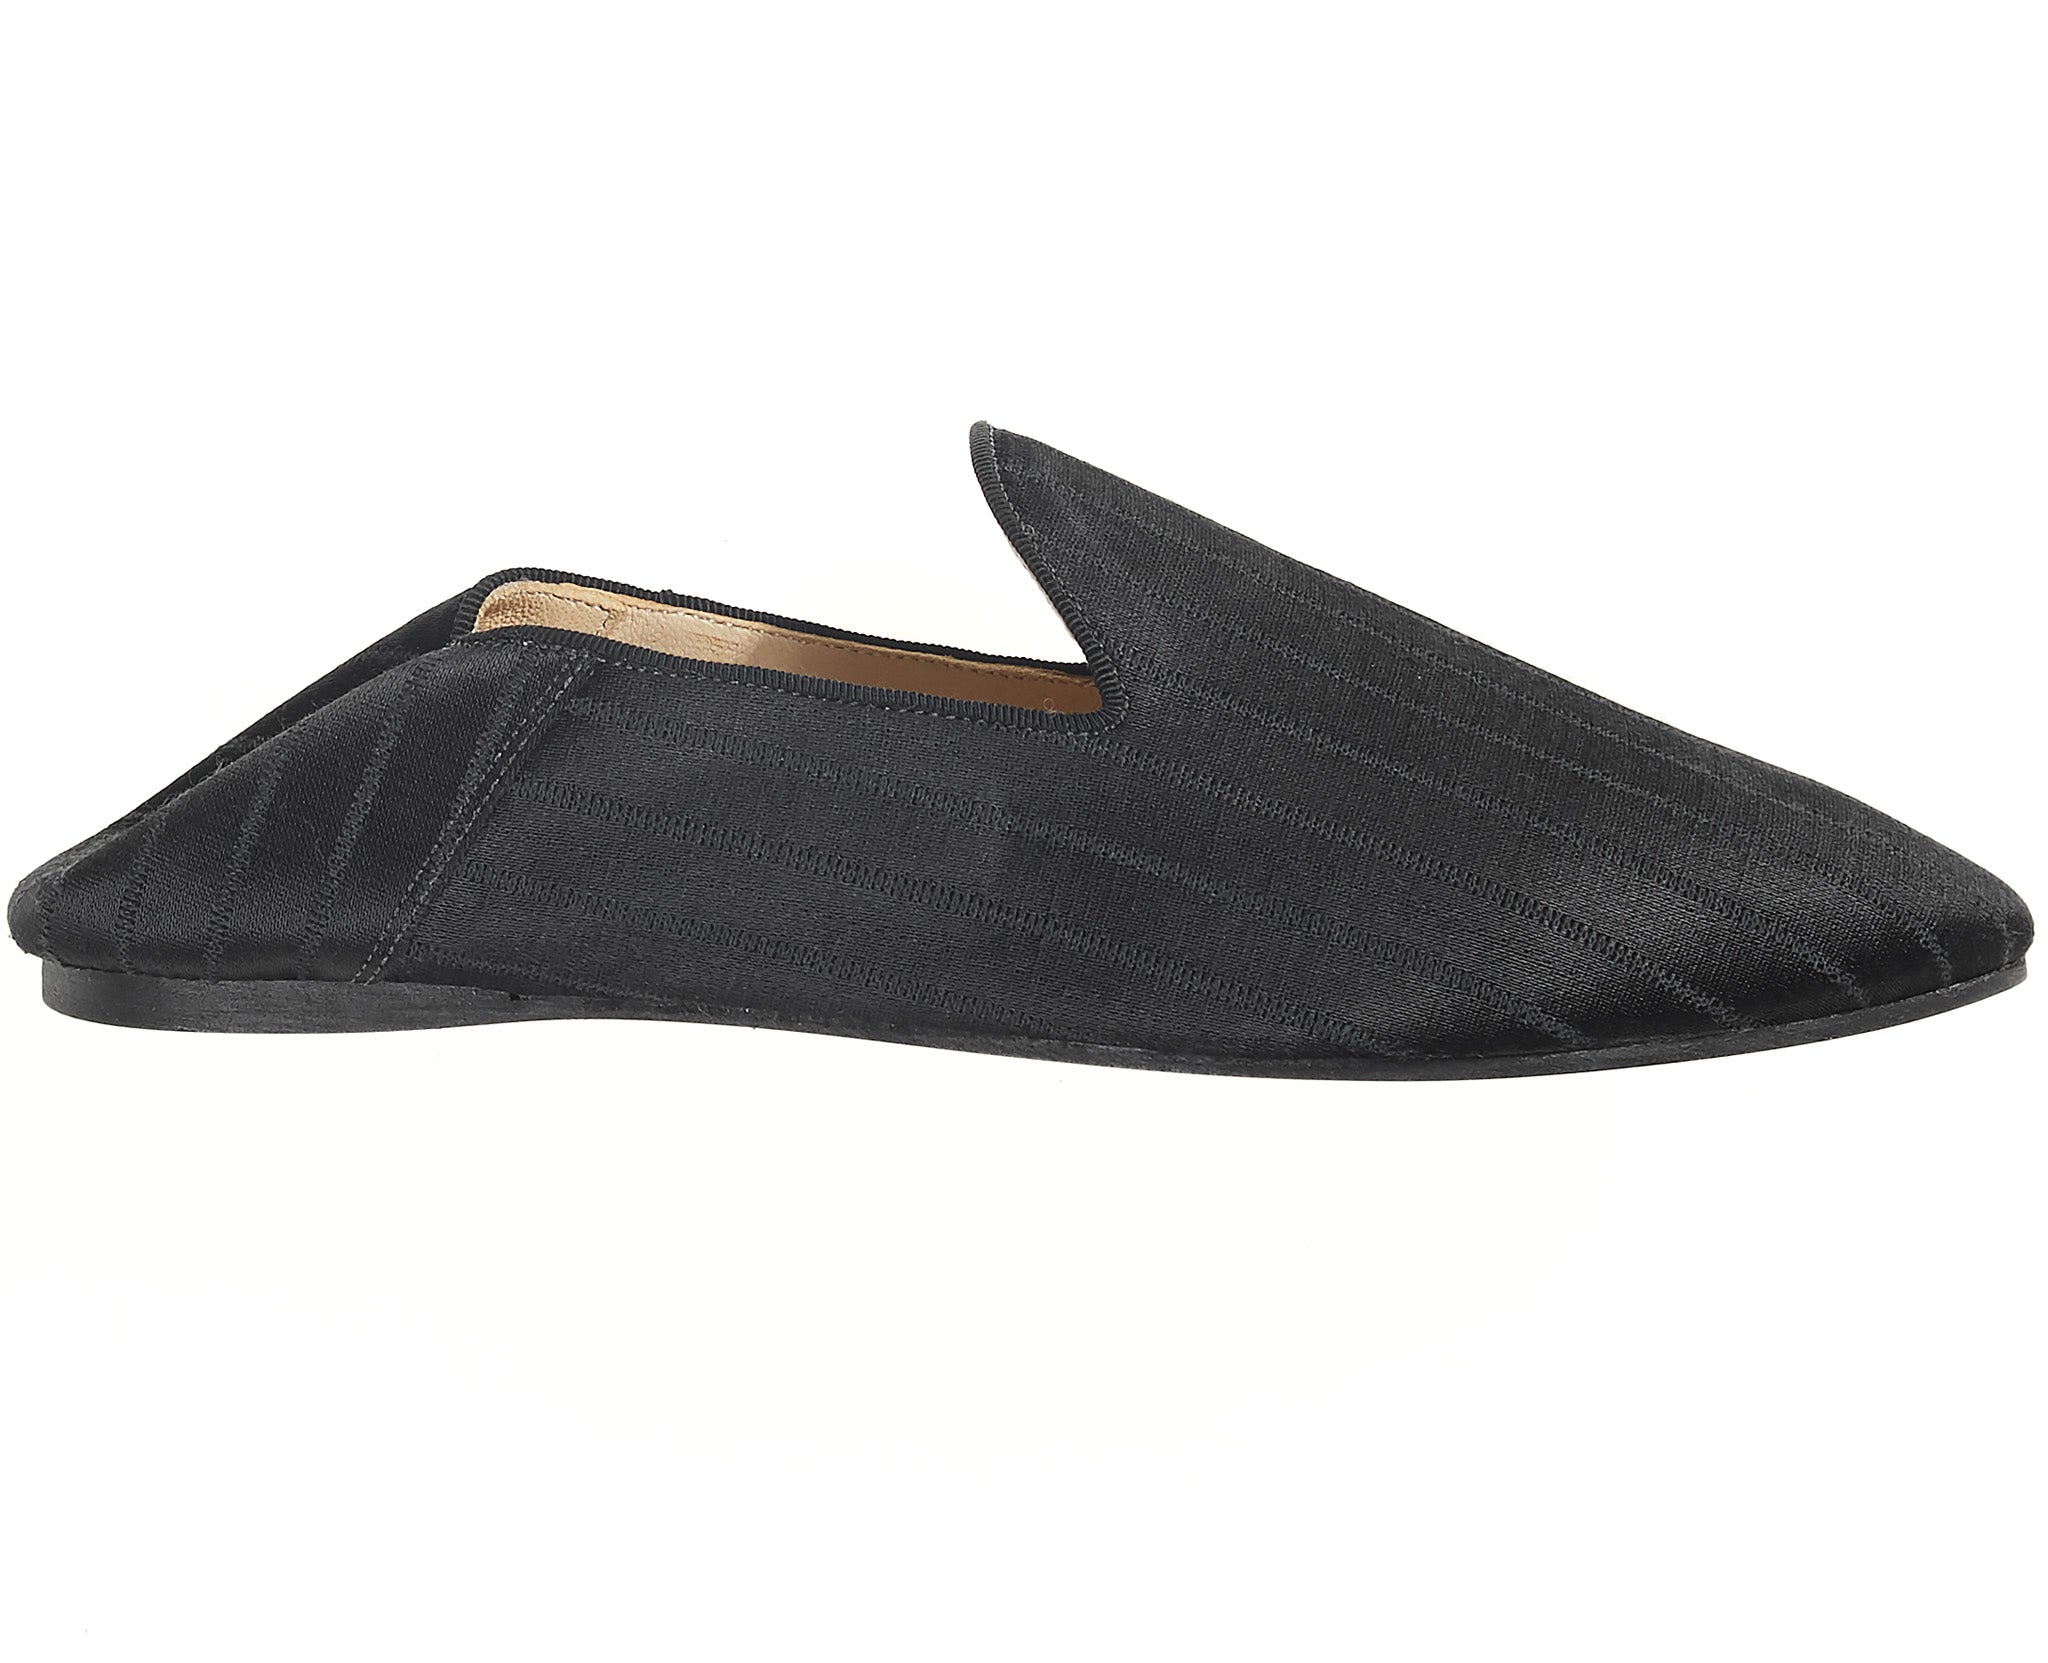 Satin Slippers Black Stripe